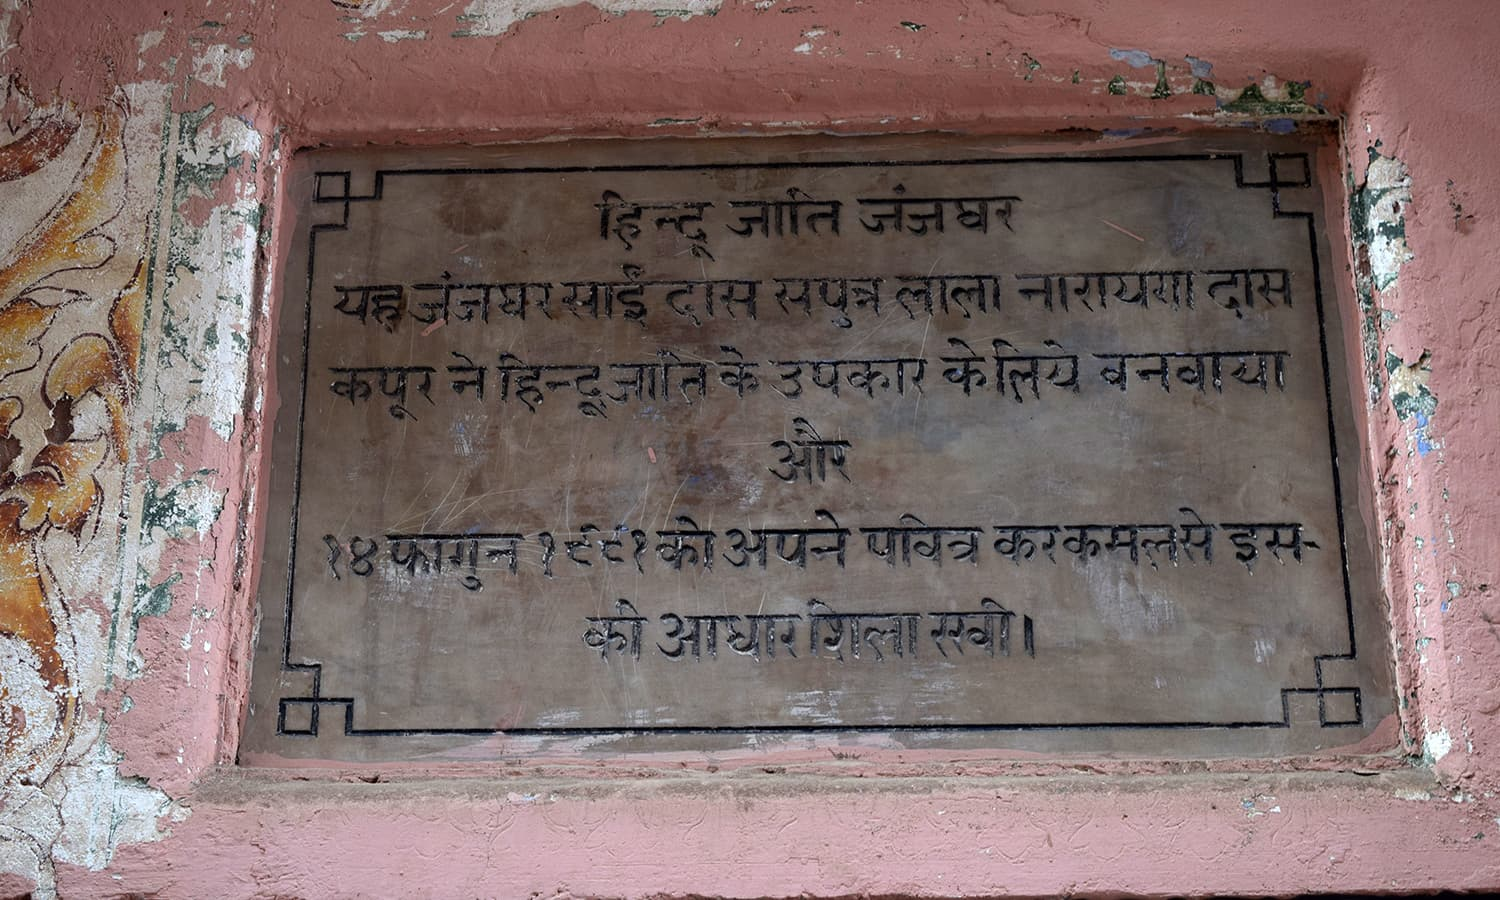 Plaques in Hindi